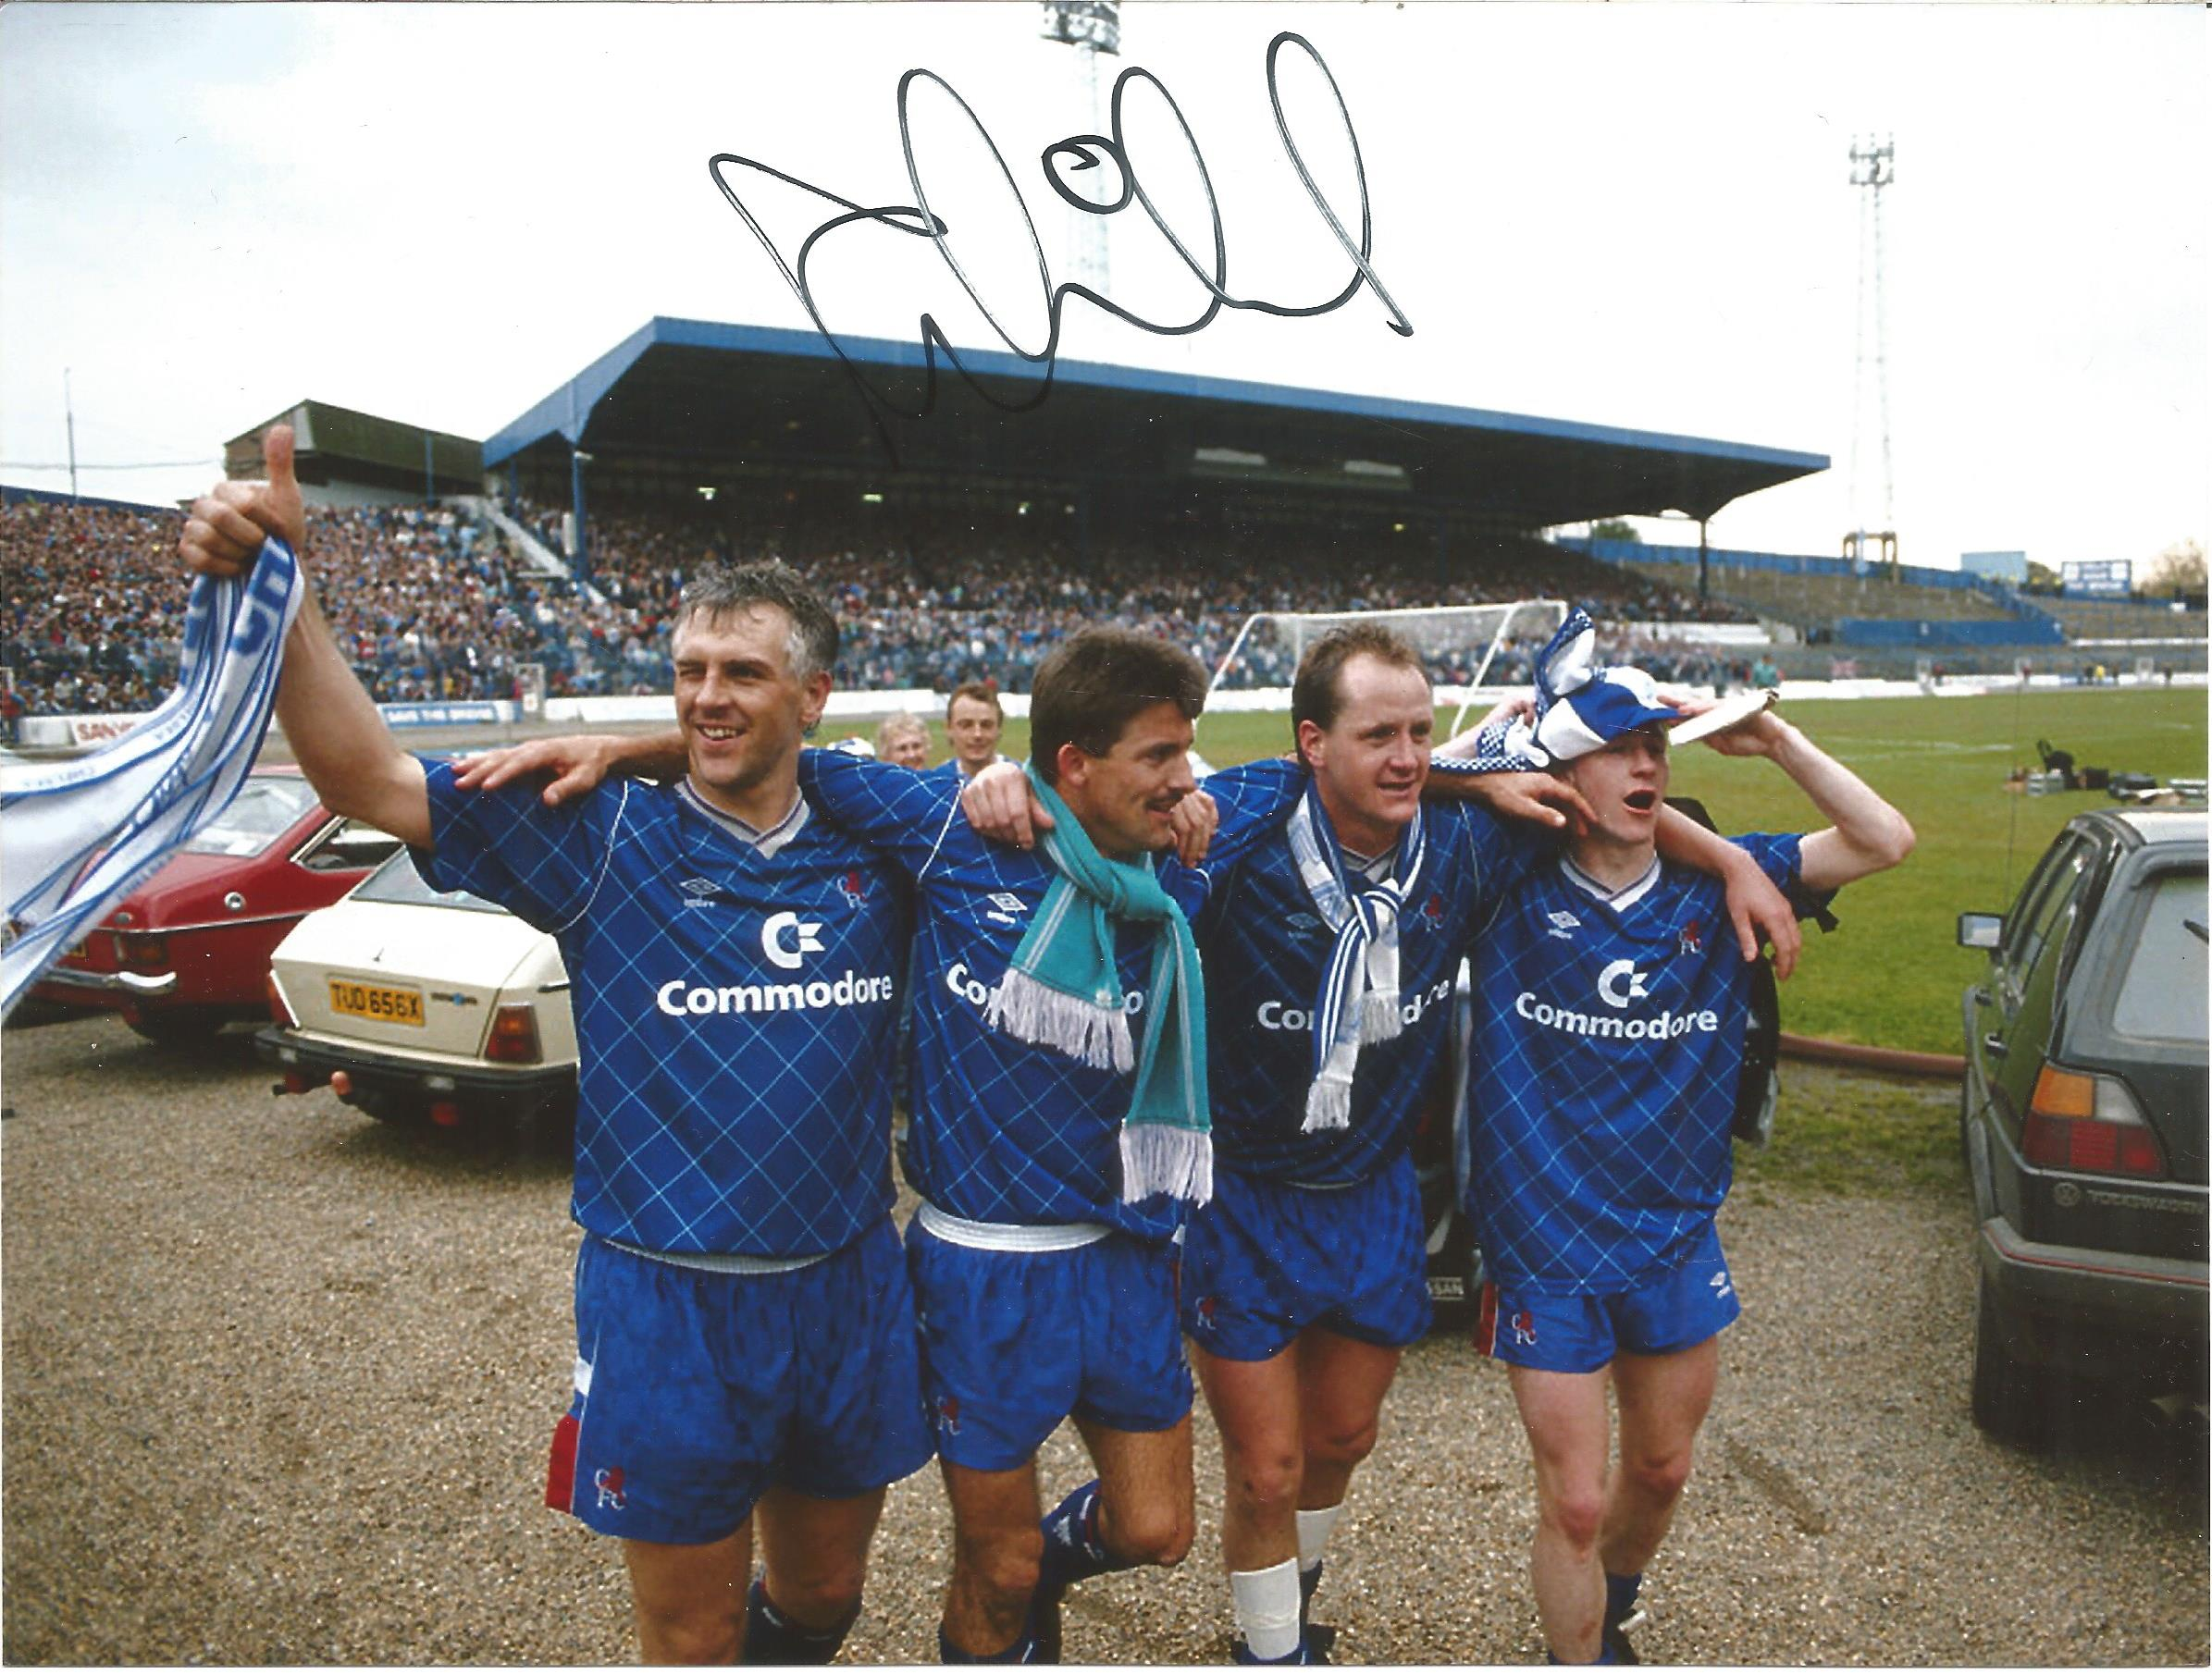 Football Autographed Chelsea 8 X 6 Photos Col & B/W, A Lot Of 8 Signed Photos Of Players From The - Image 3 of 4